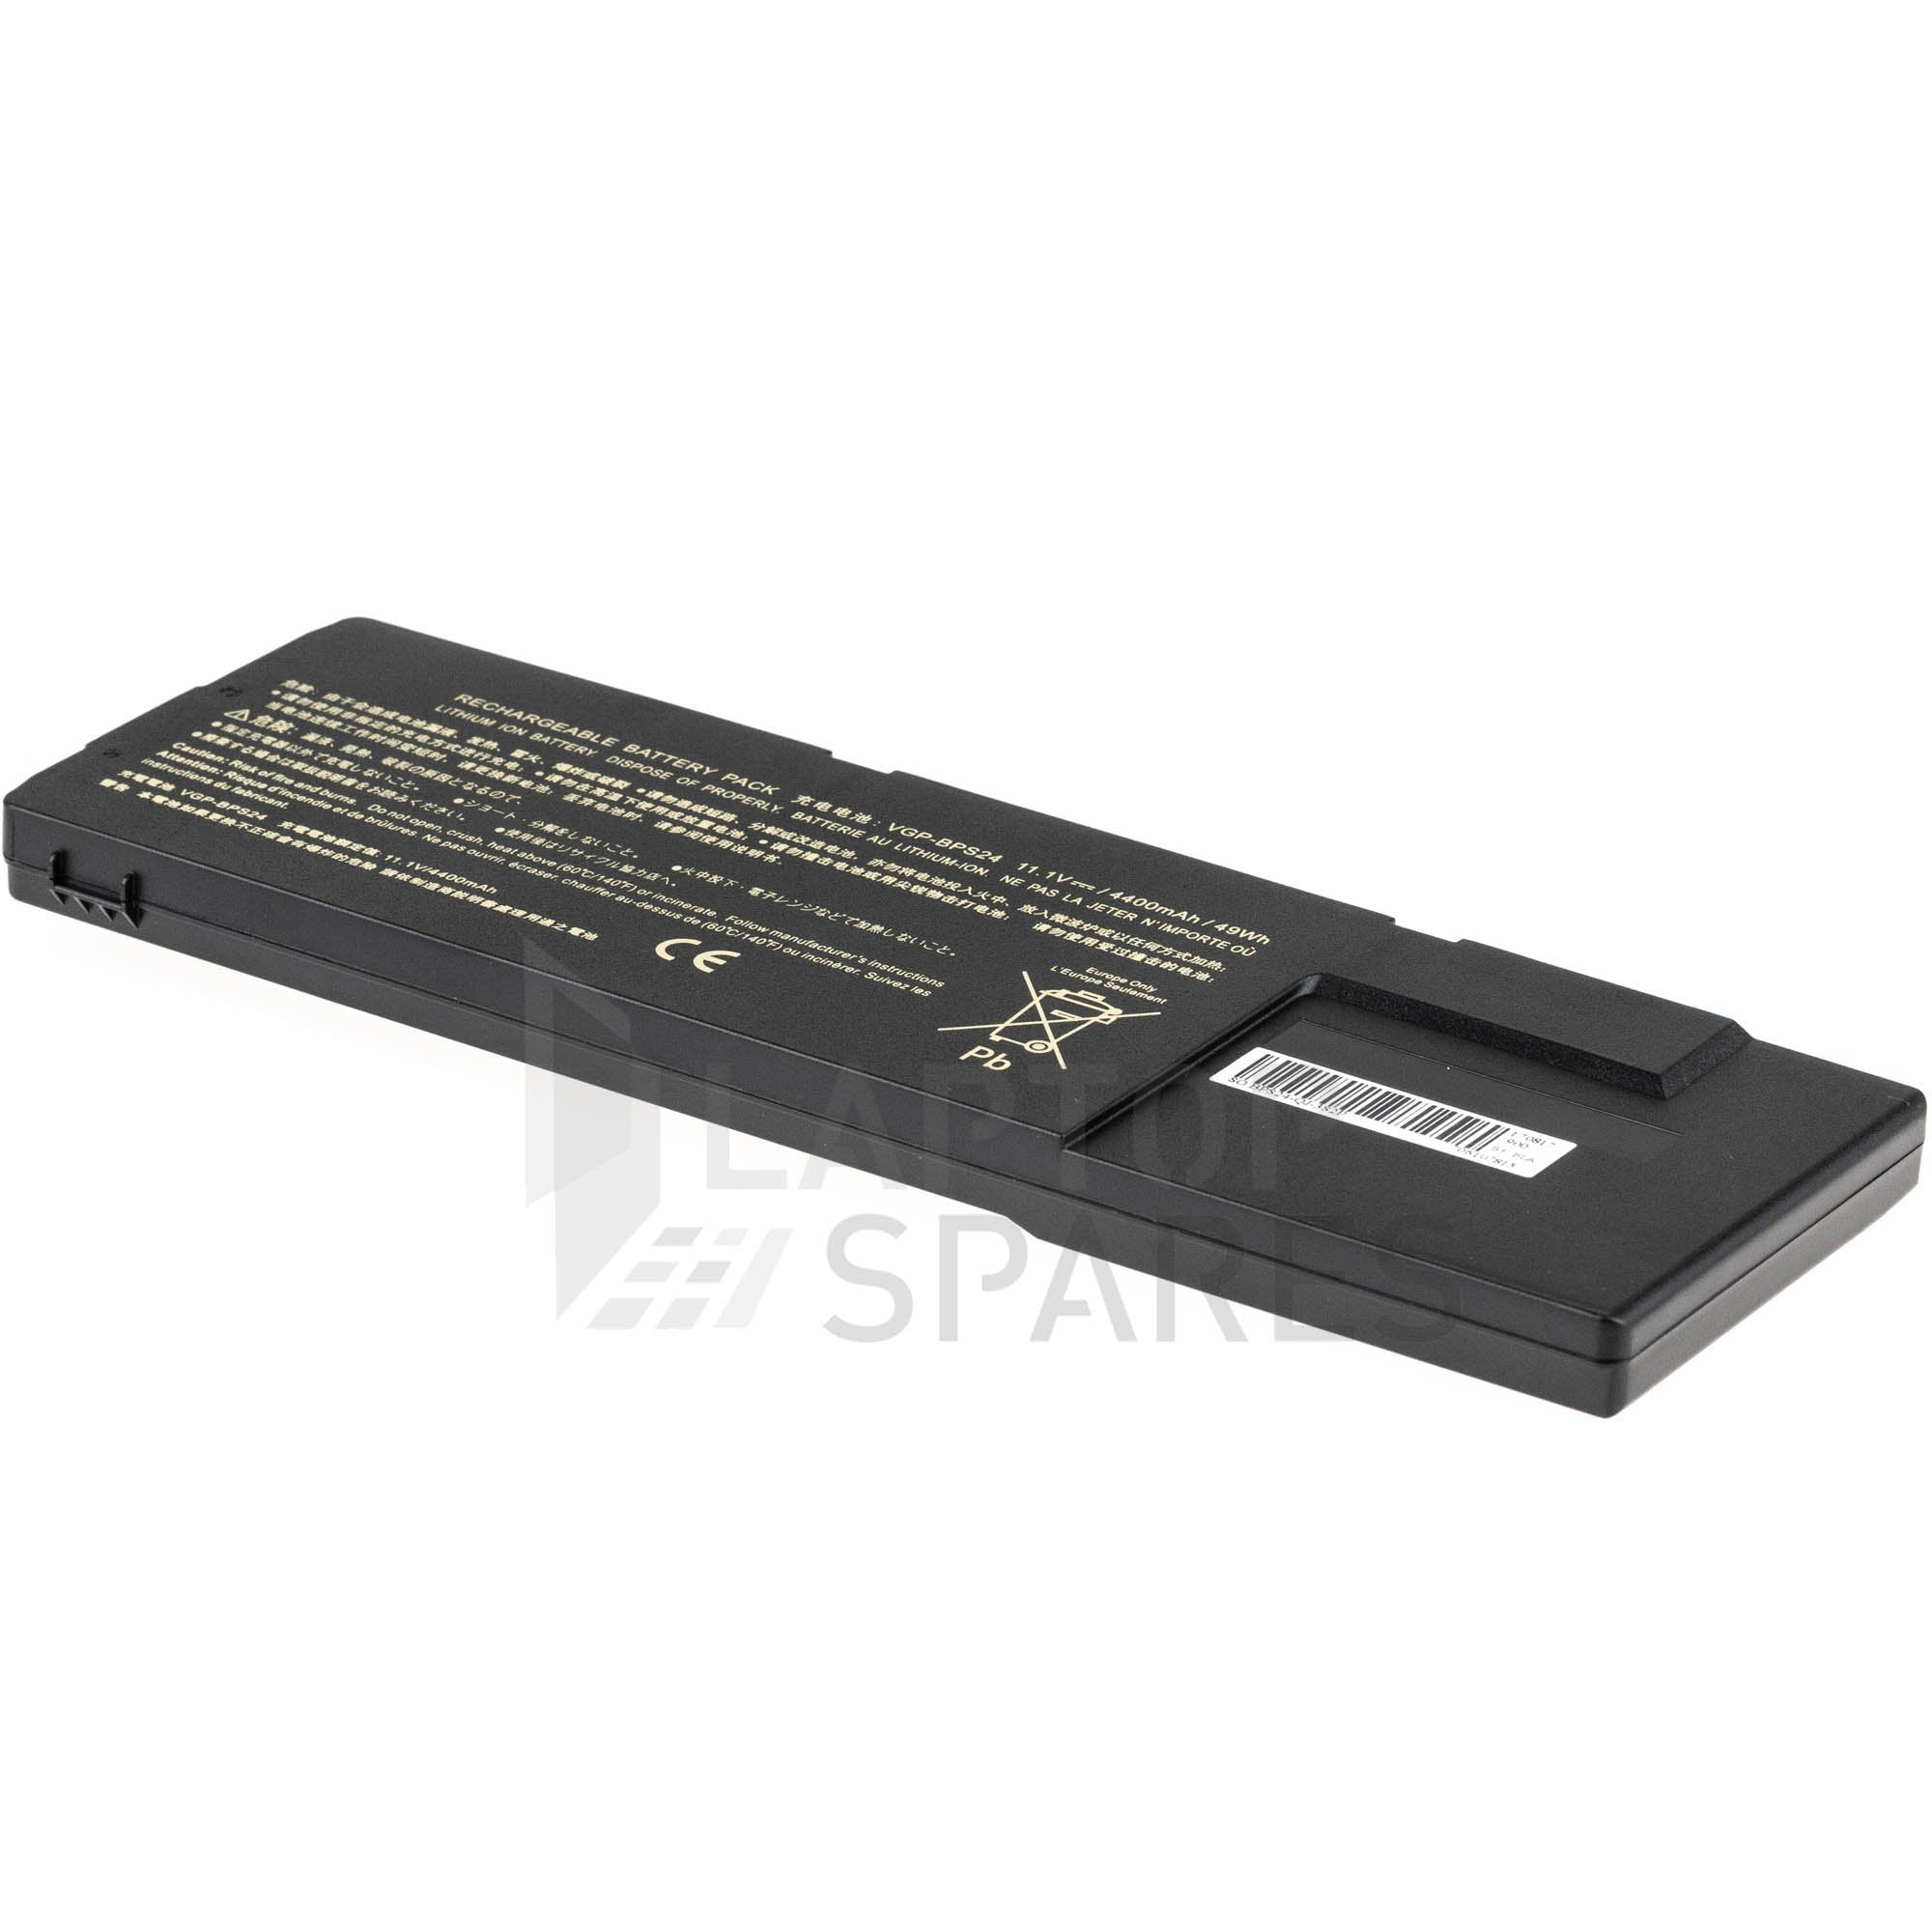 Sony Vaio VPC SB25FG/L SB25FG/P 4400mAh 6 Cell Battery